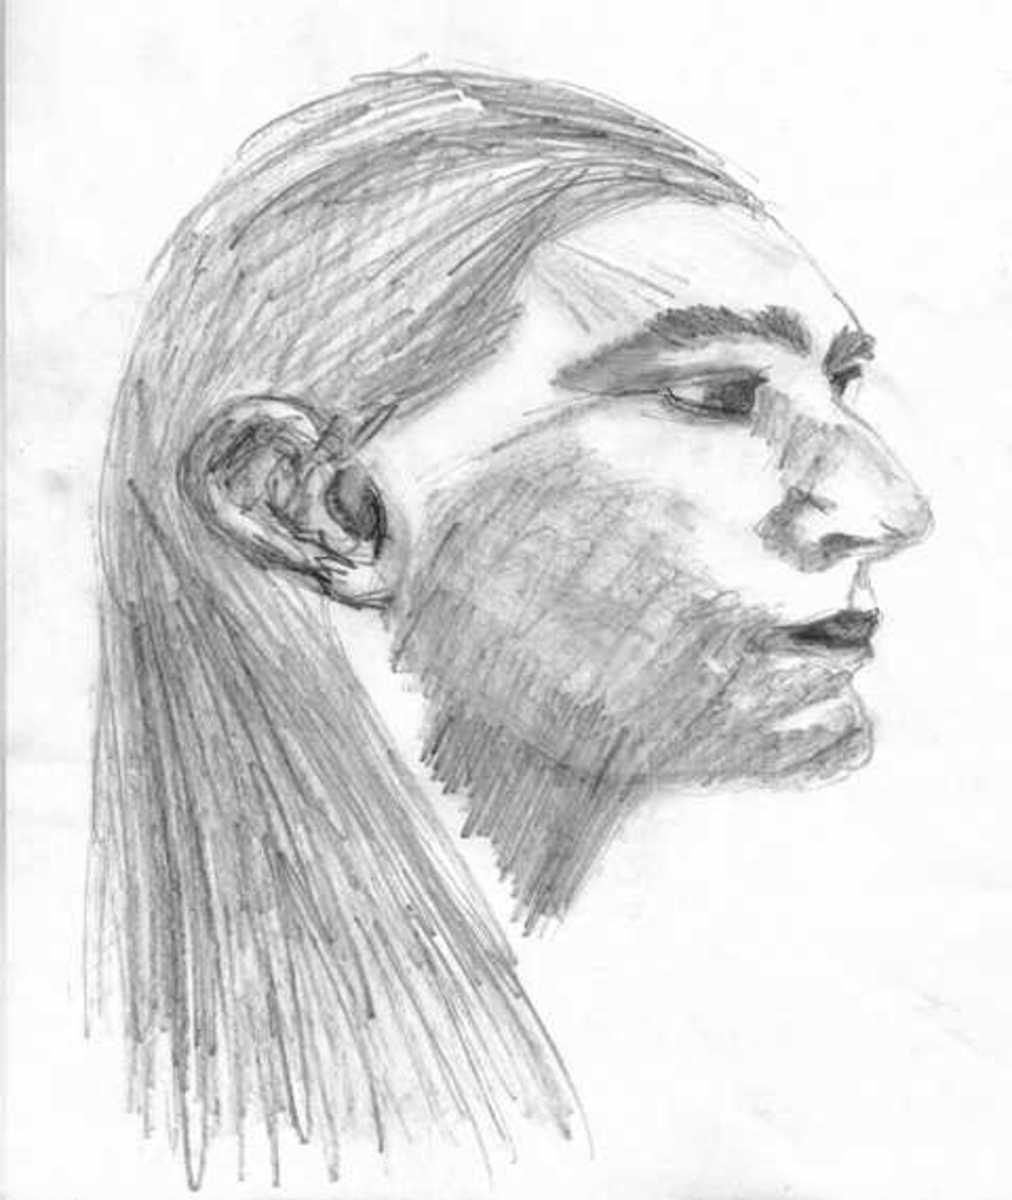 Drawing I made of the Native American who came to me, later to be known as my spirit guide